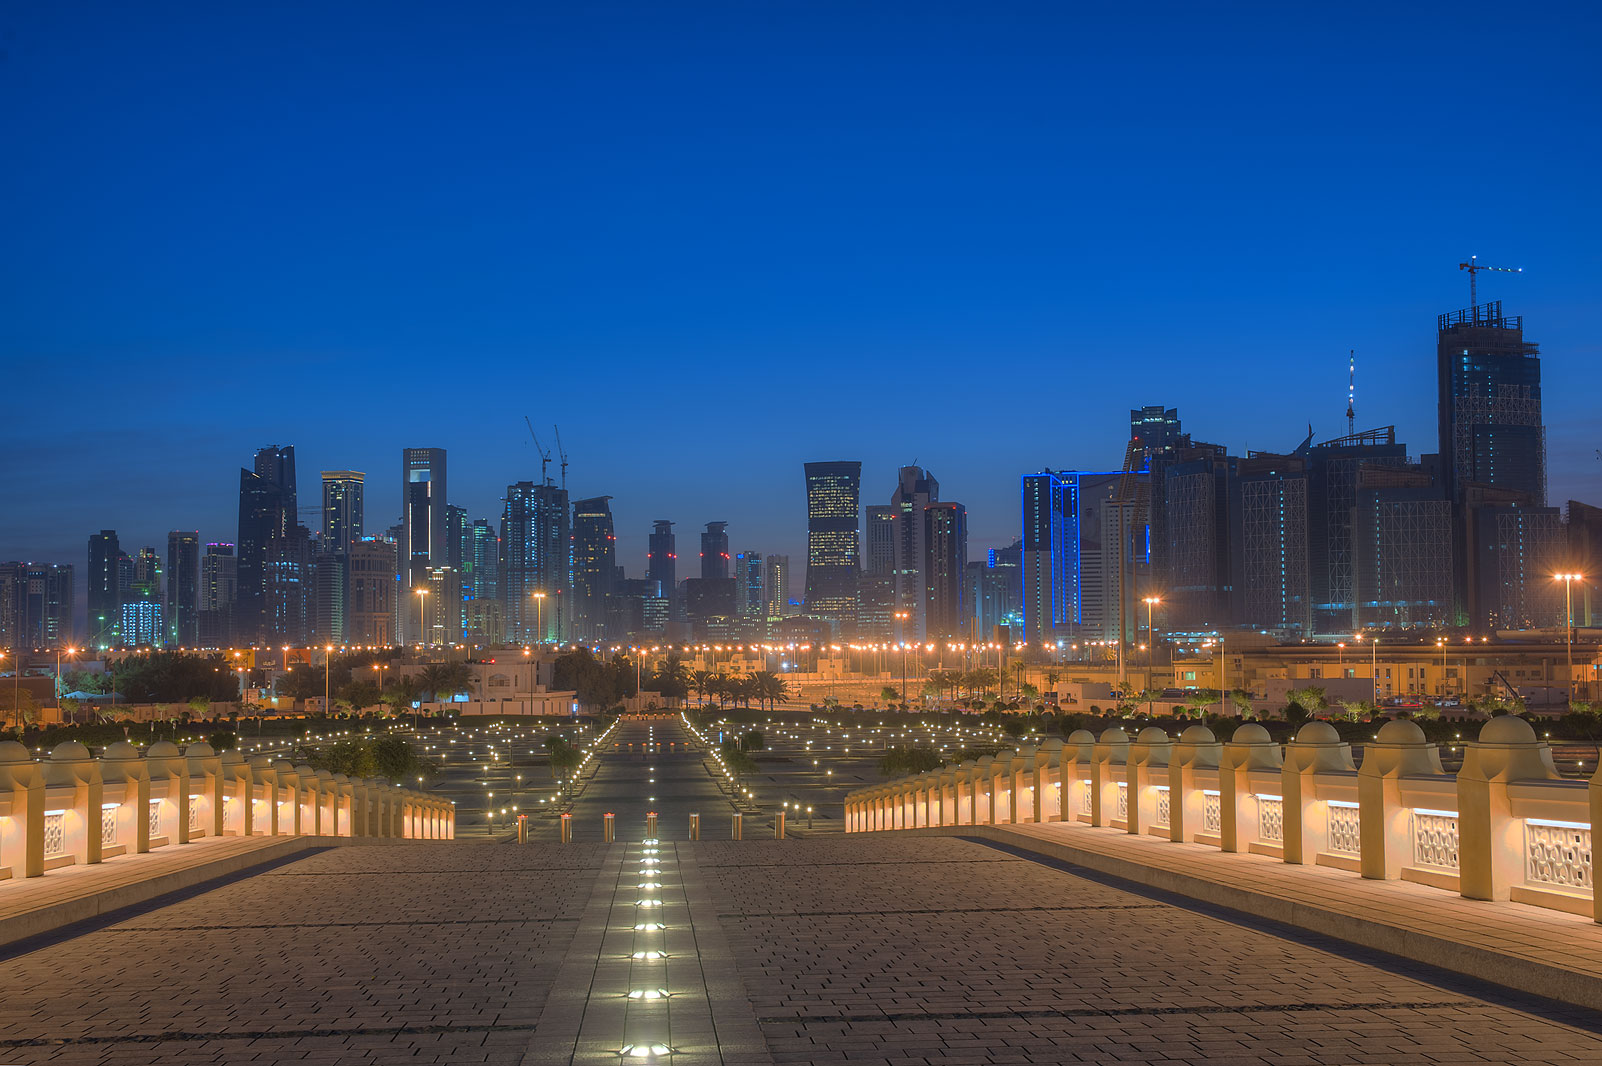 West Bay from State Mosque (Sheikh Muhammad Ibn Abdul Wahhab Mosque). Doha, Qatar